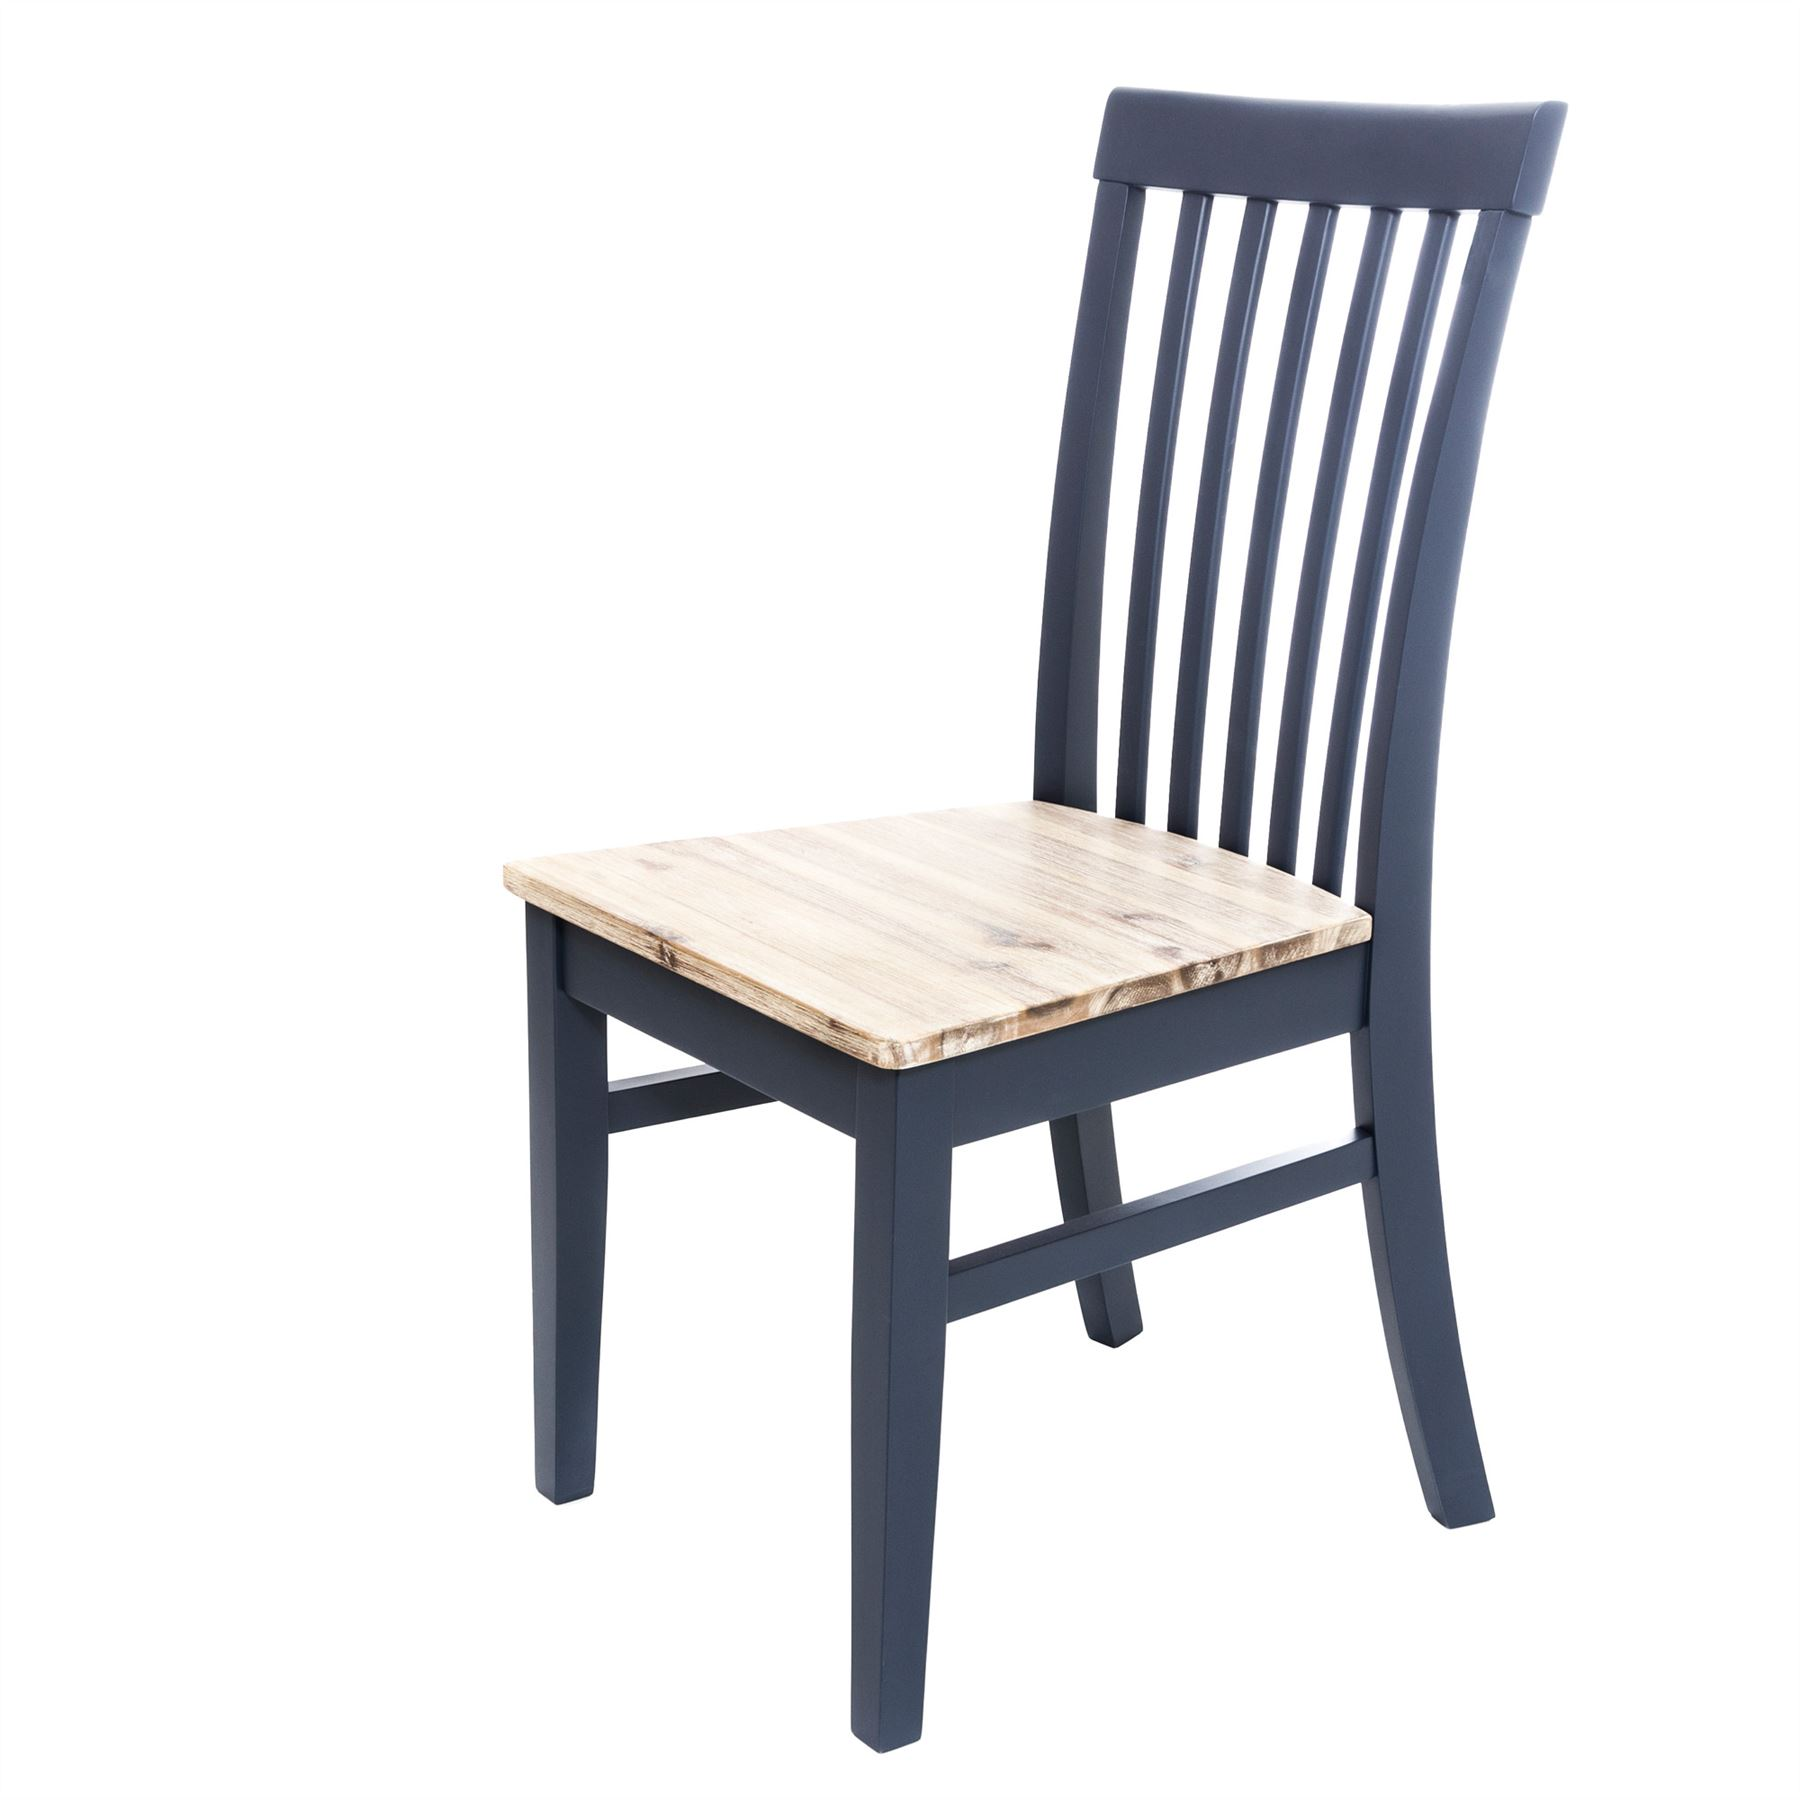 Details about Florence navy blue dining chair.Solid wood kitchen  chair,highback chair, QUALITY